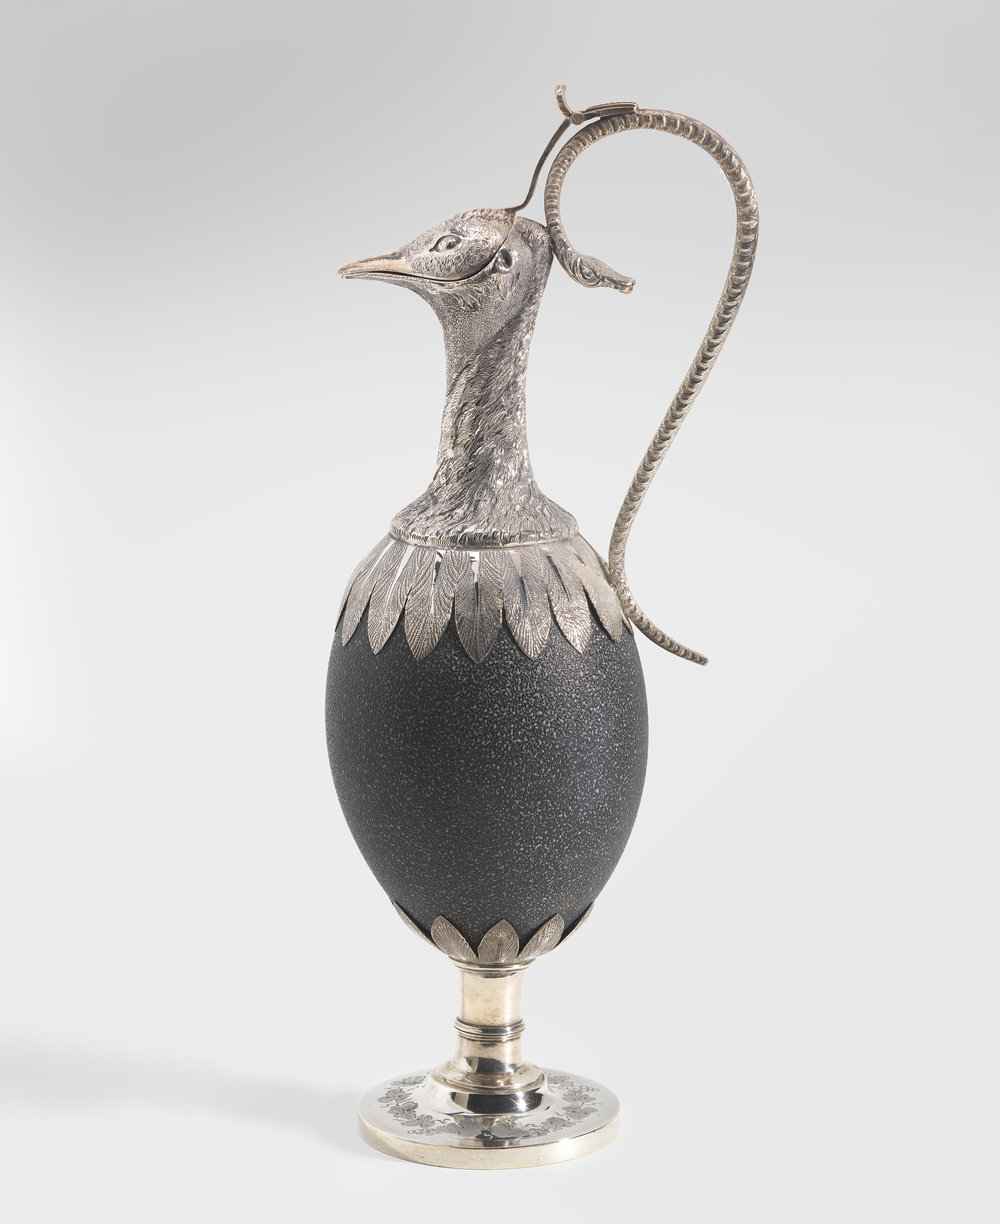 Henry Steiner,   Emu egg claret jug  c.1875, sterling silver: raised,stamped, repousse, chased; emu egg: mounted. National Gallery of Australia, Canberra. Purchased 2014